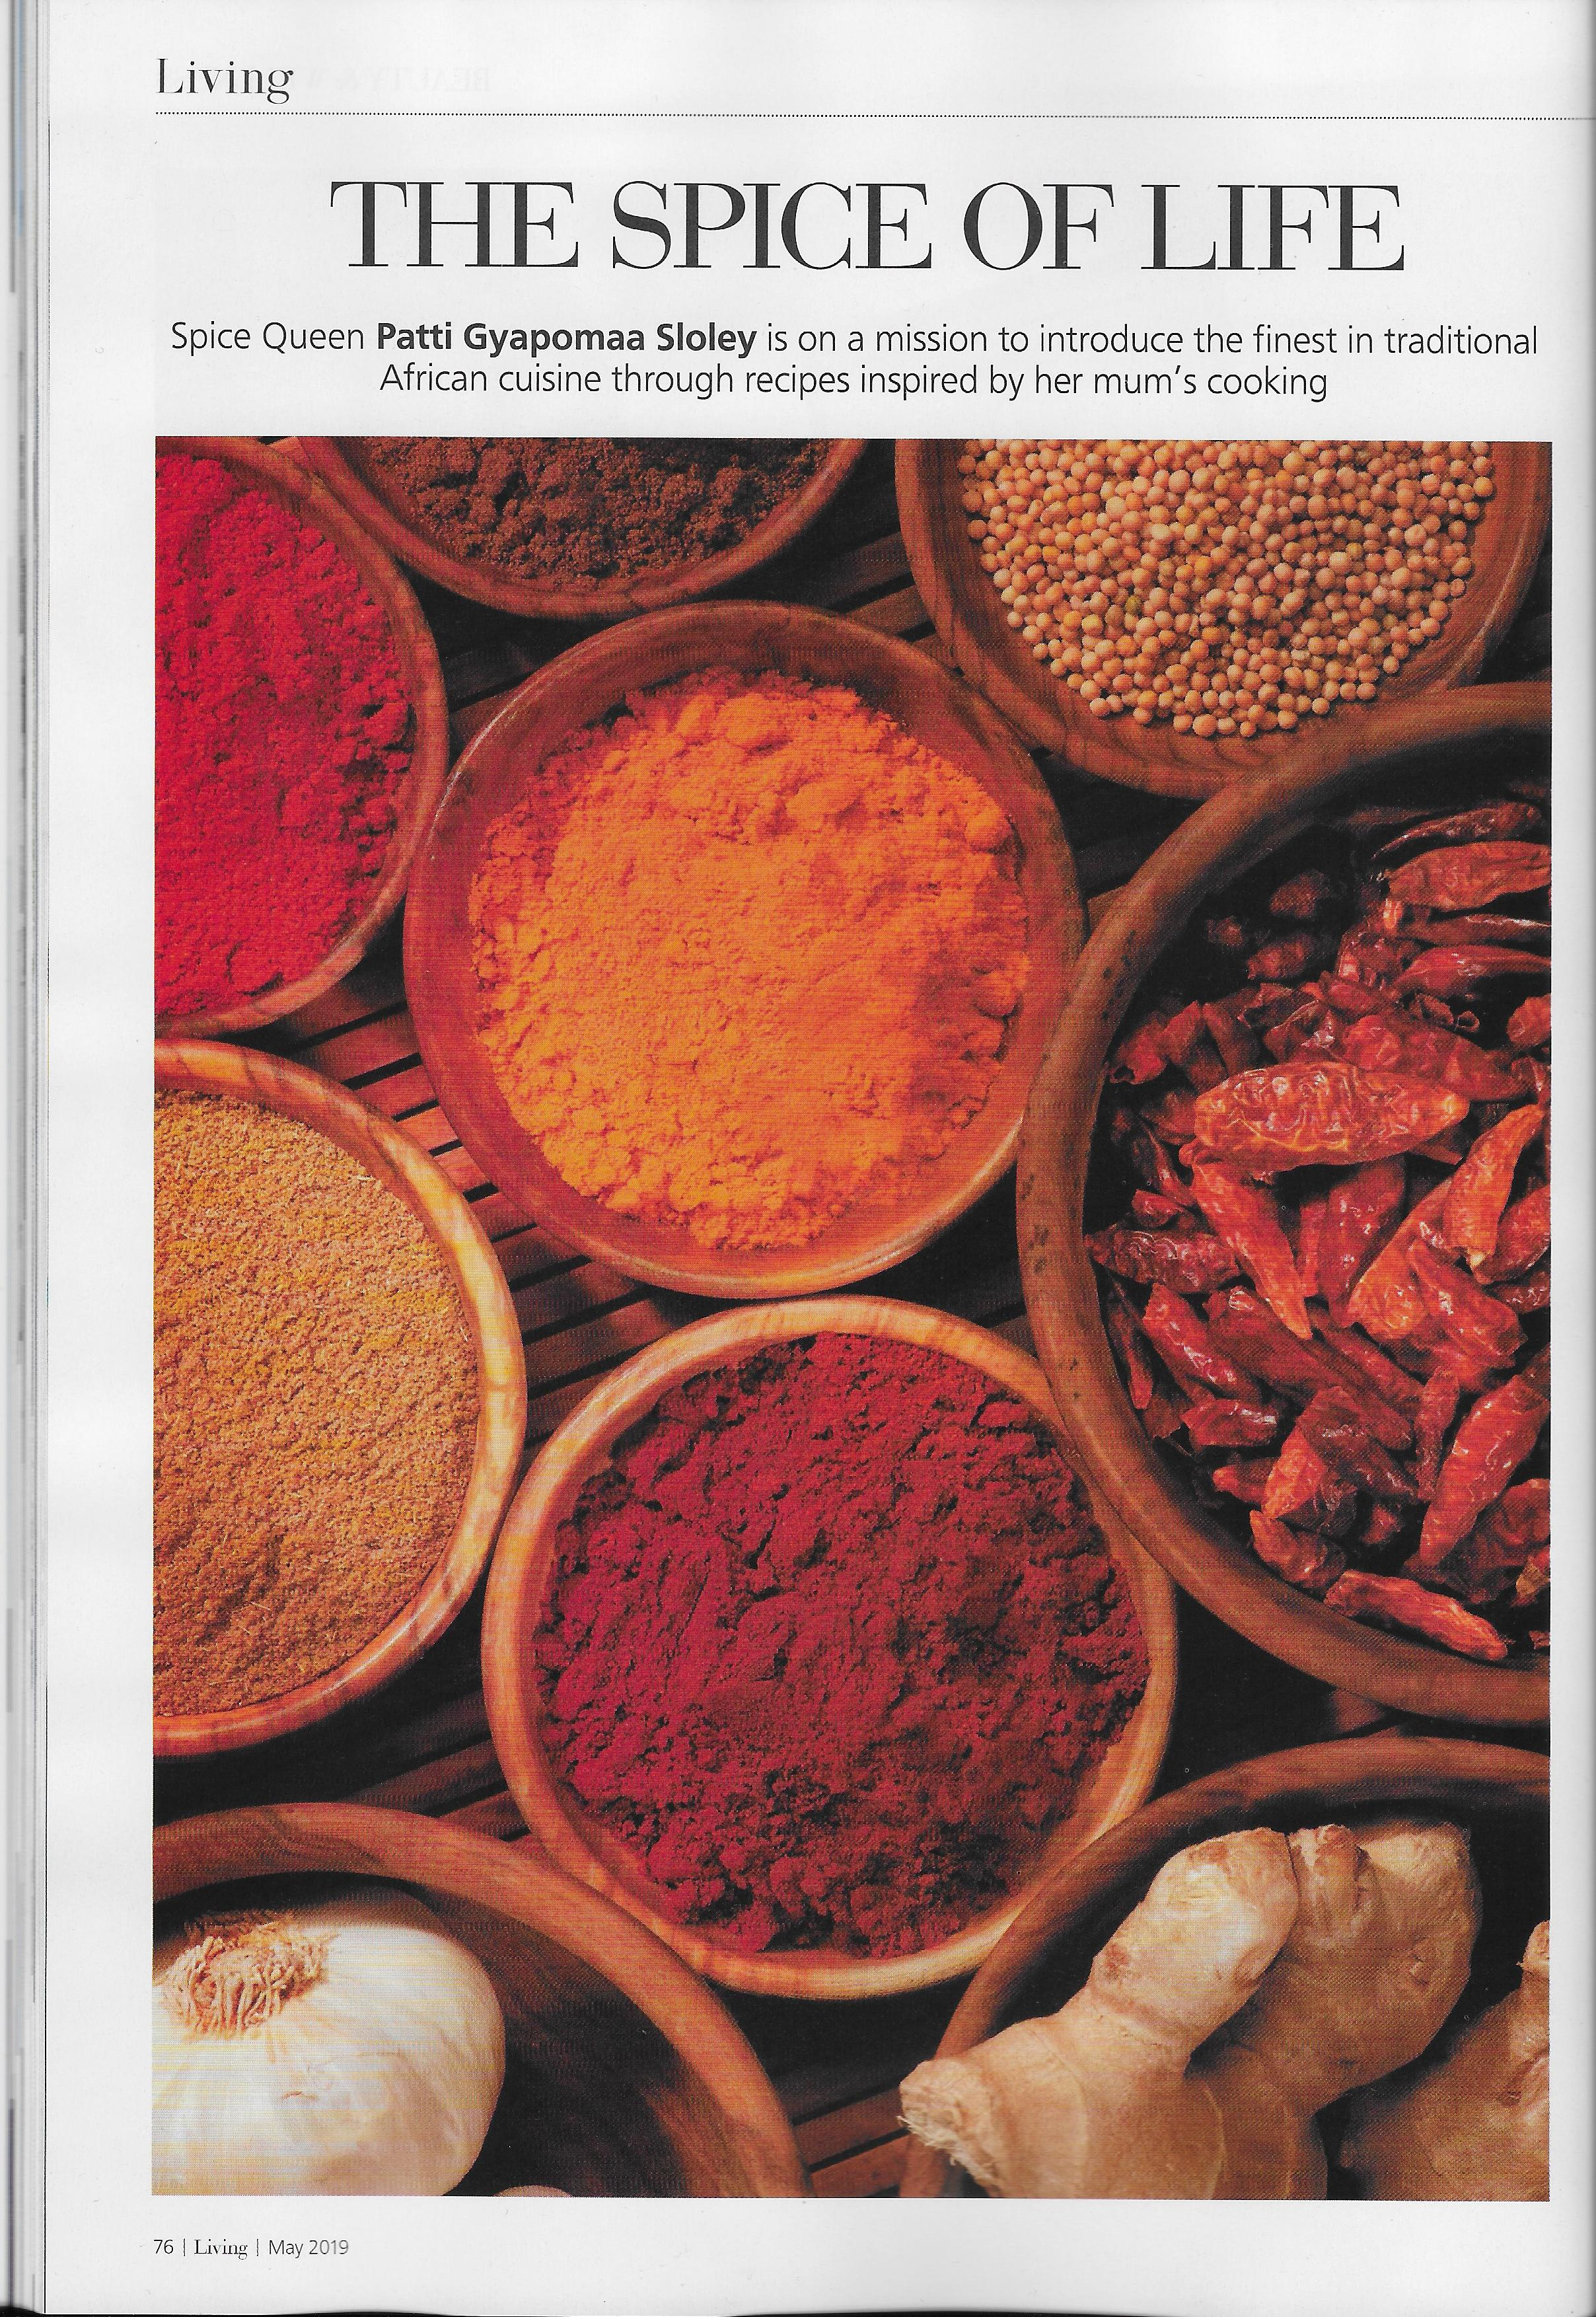 A Delicious Fusion Of African And Western Recipes And Tastes